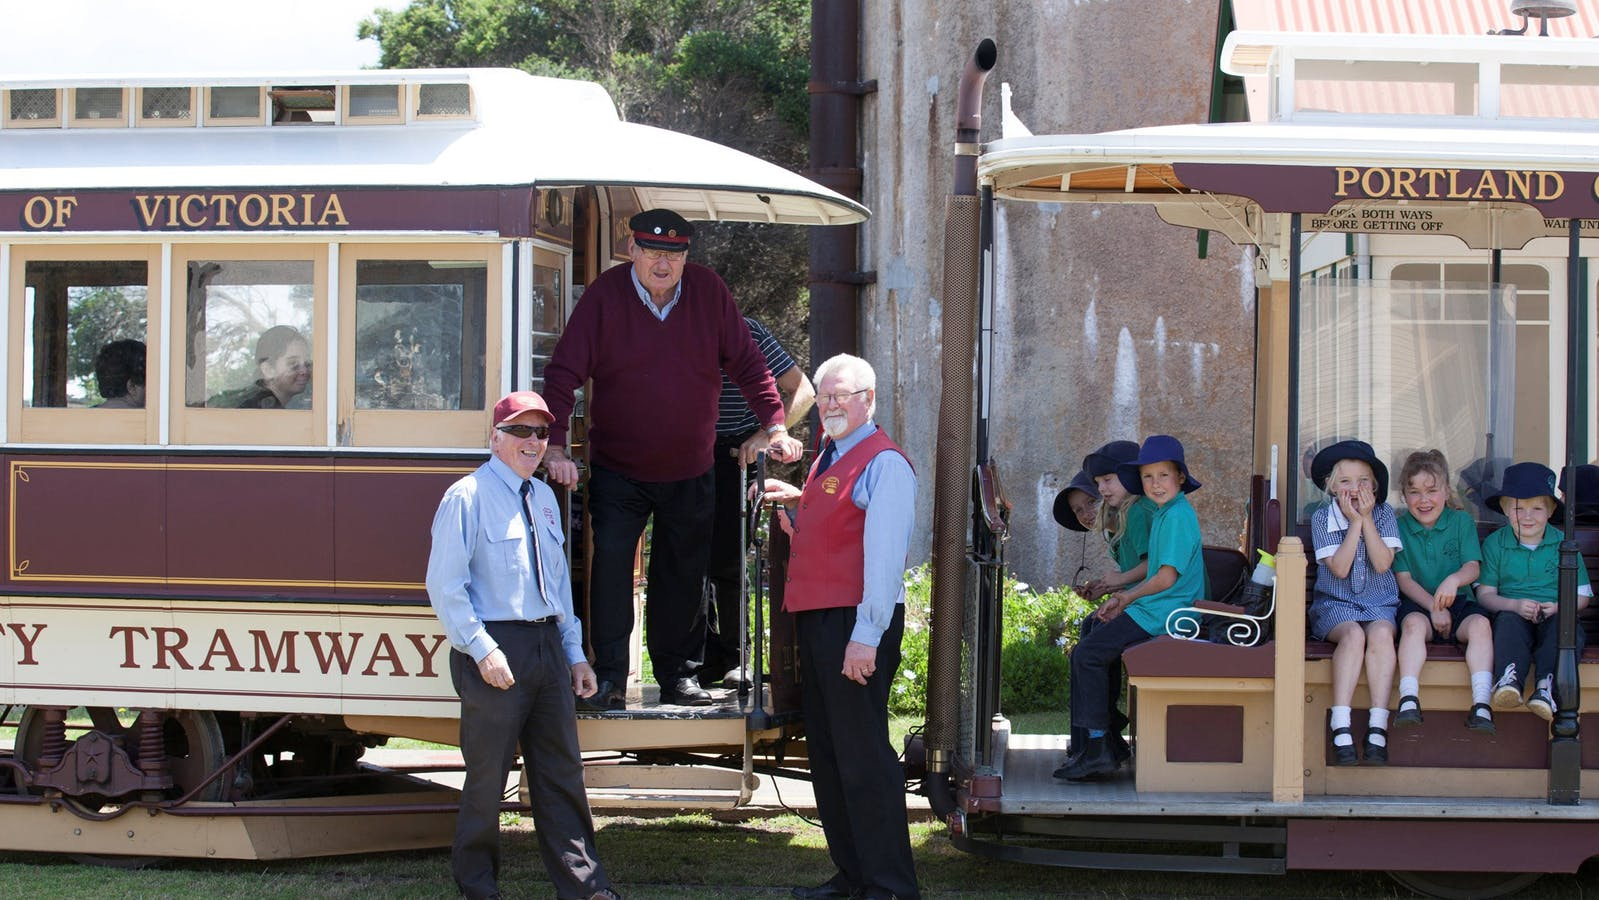 Portland Cable Trams, volunteers and conductor